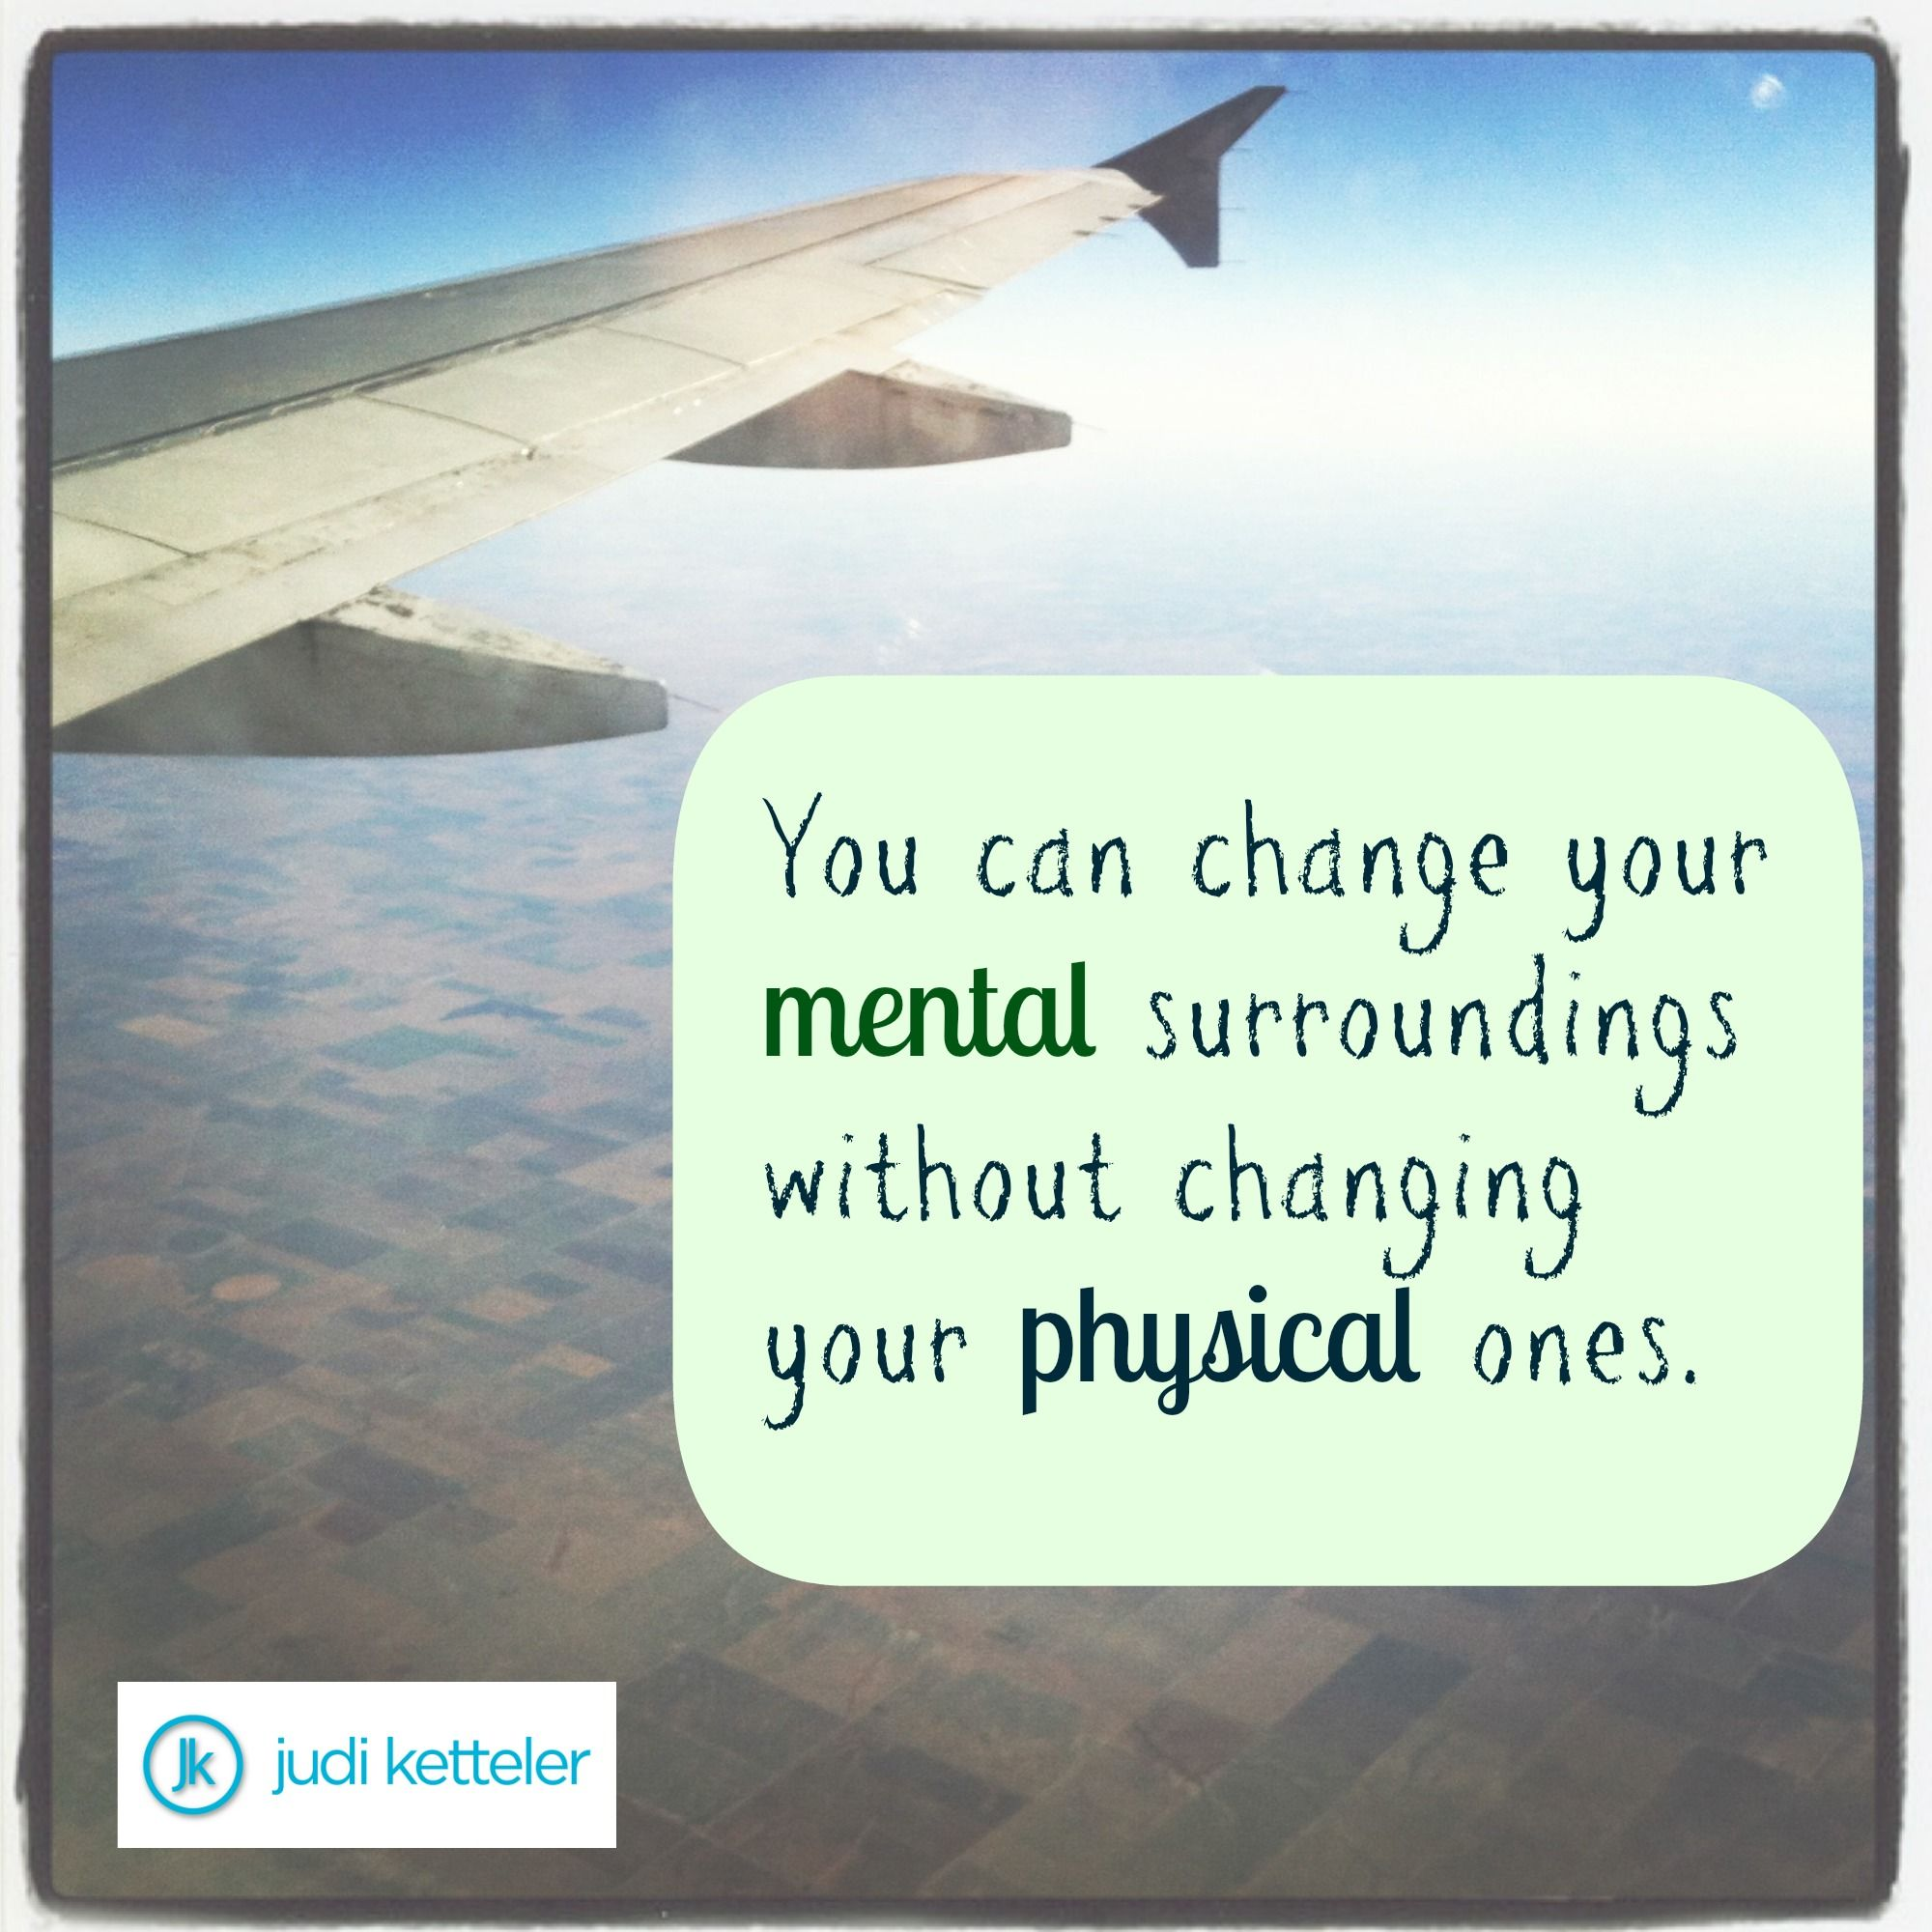 You can change your mental surroundings without changing your physical ones.